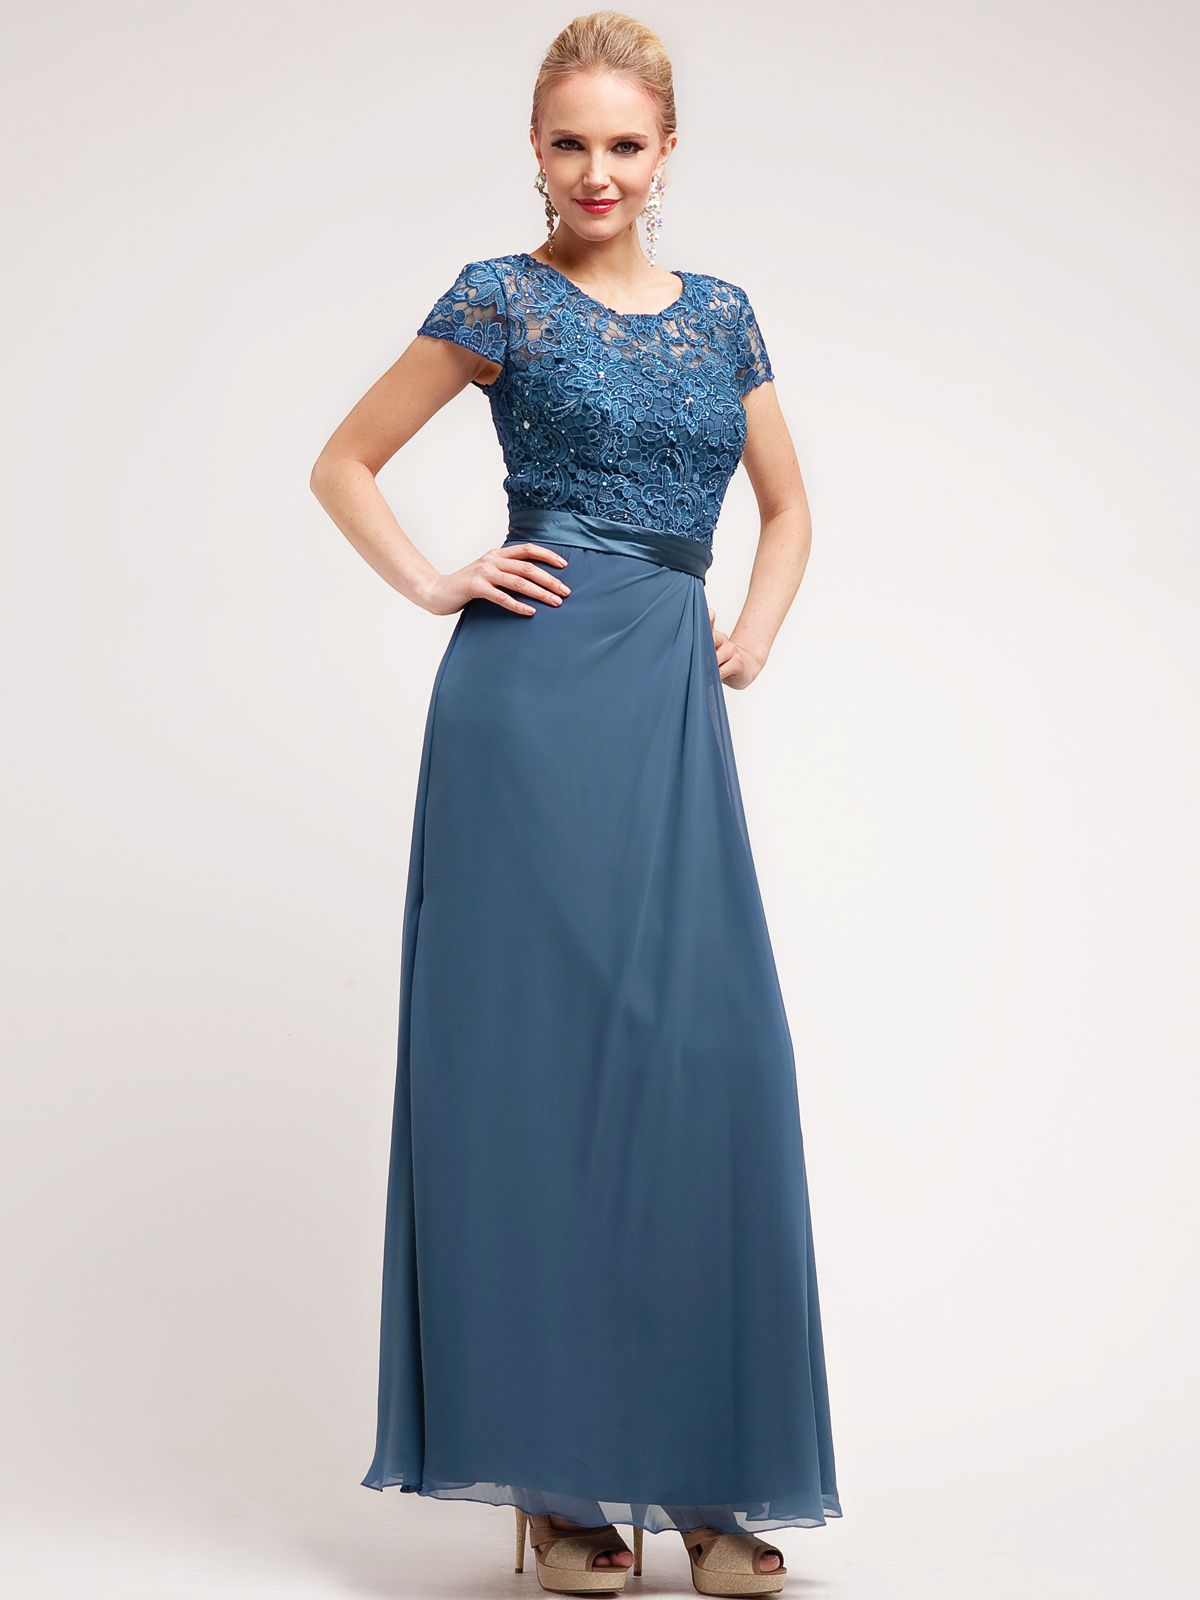 Elegant Lace and Floral Top Chiffon Evening Dress | Sung Boutique ...